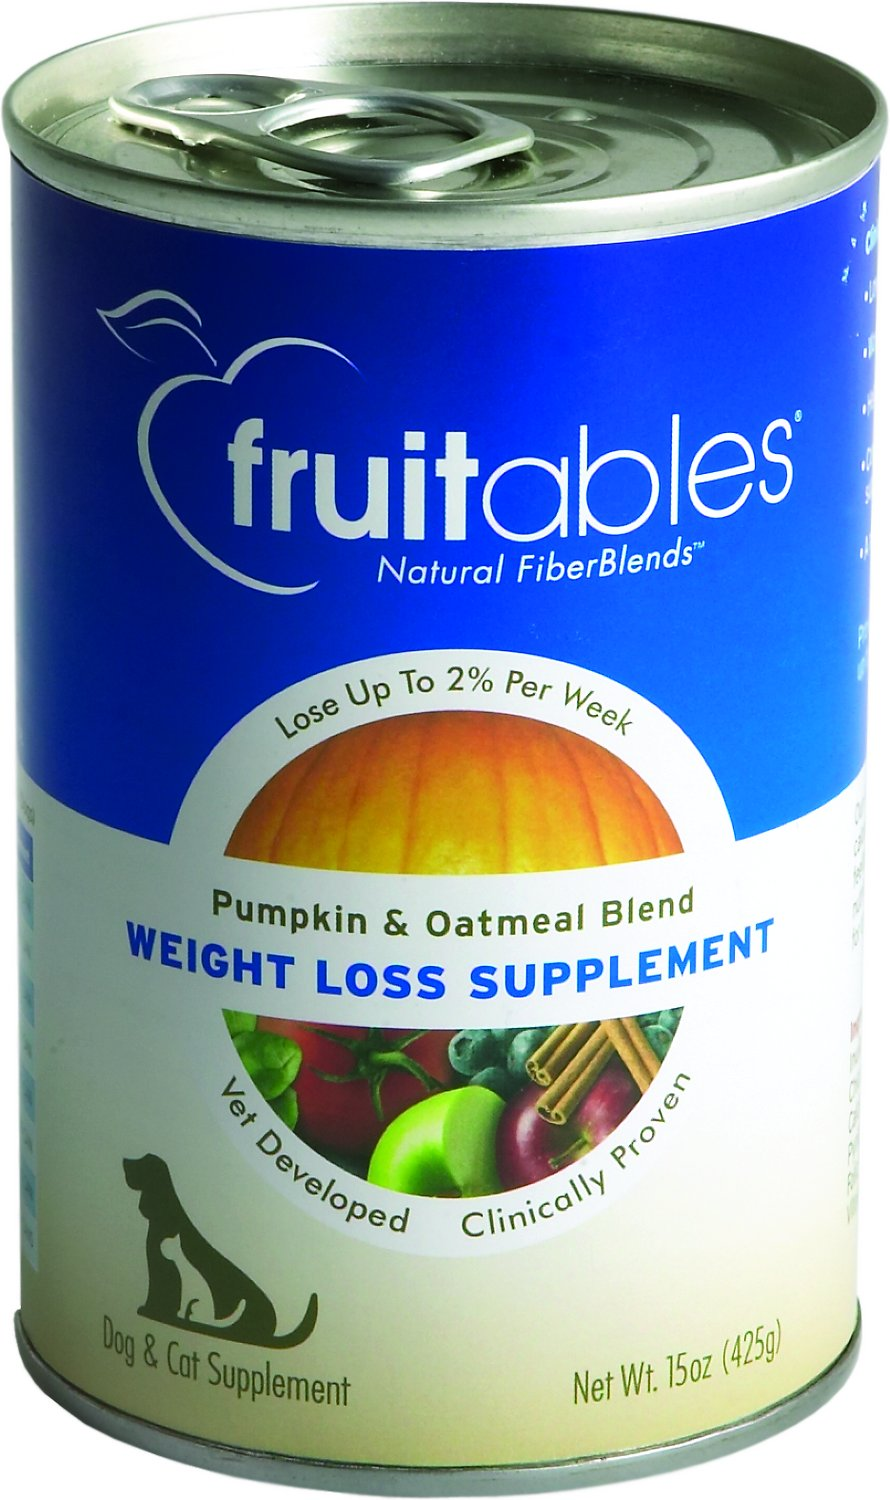 Fruitables Pumpkin and Oatmeal SuperBlend Weight Loss Dog & Cat Suppliment Image